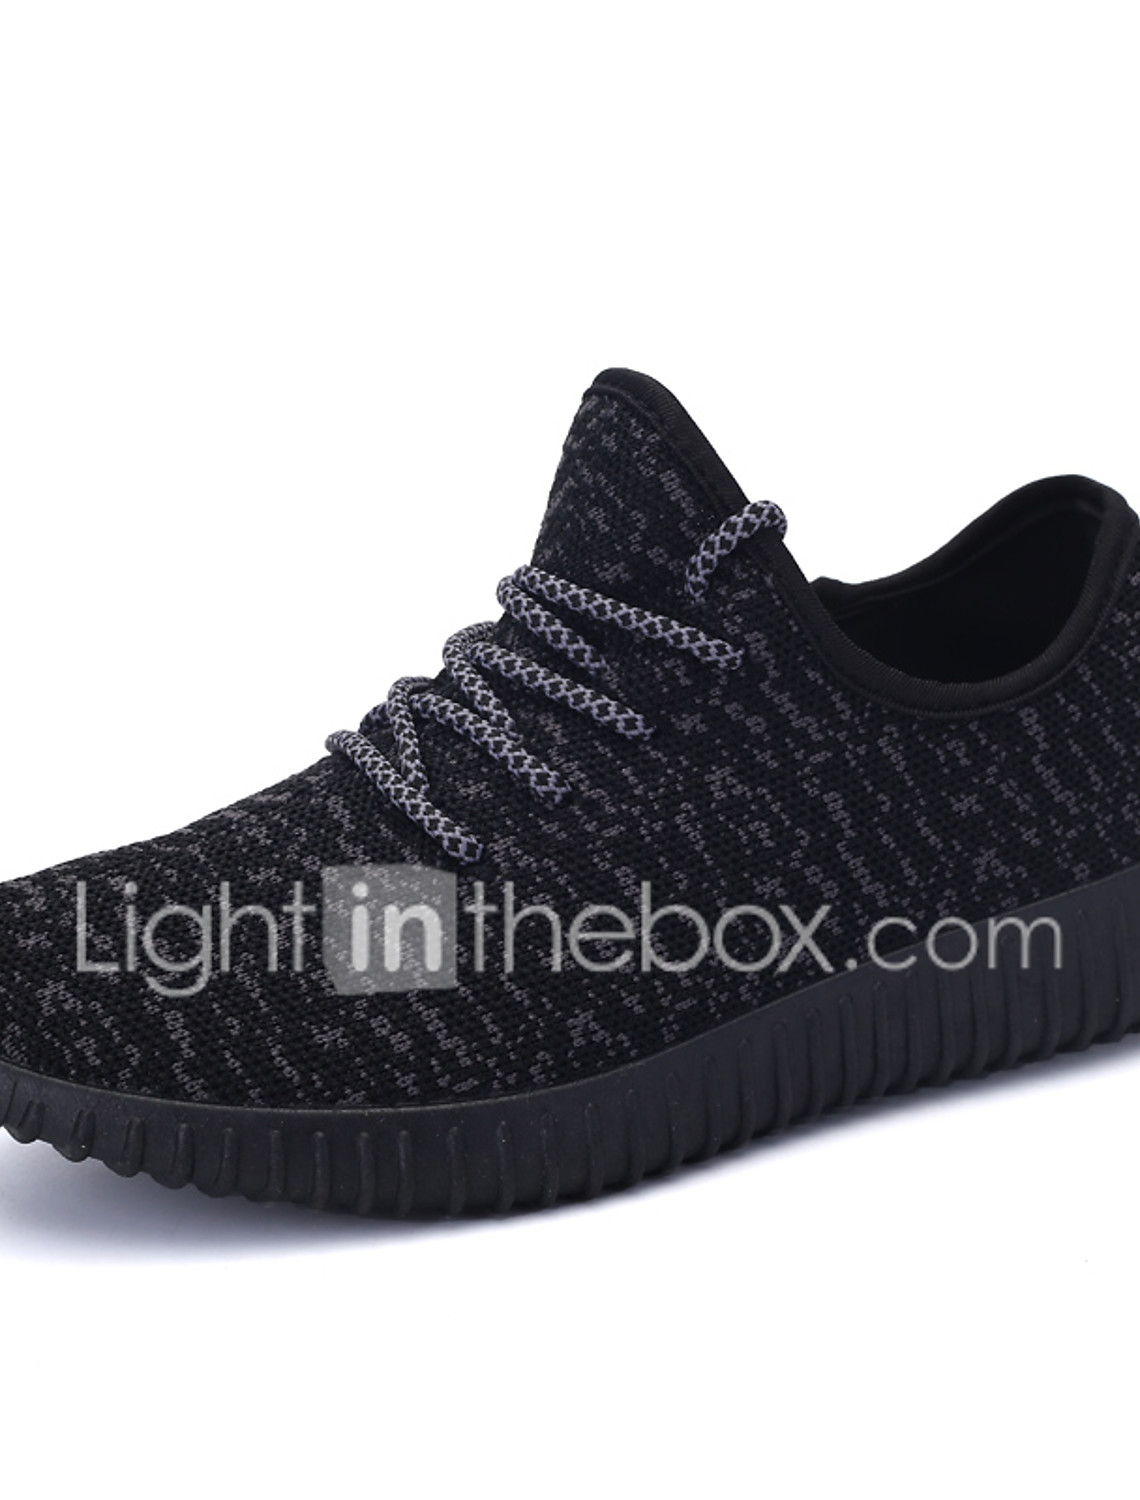 Shoes n sandals online - Running Shoes Men S Women S Anti Slip Damping Breathable Coconut Shoes Leisure Sports